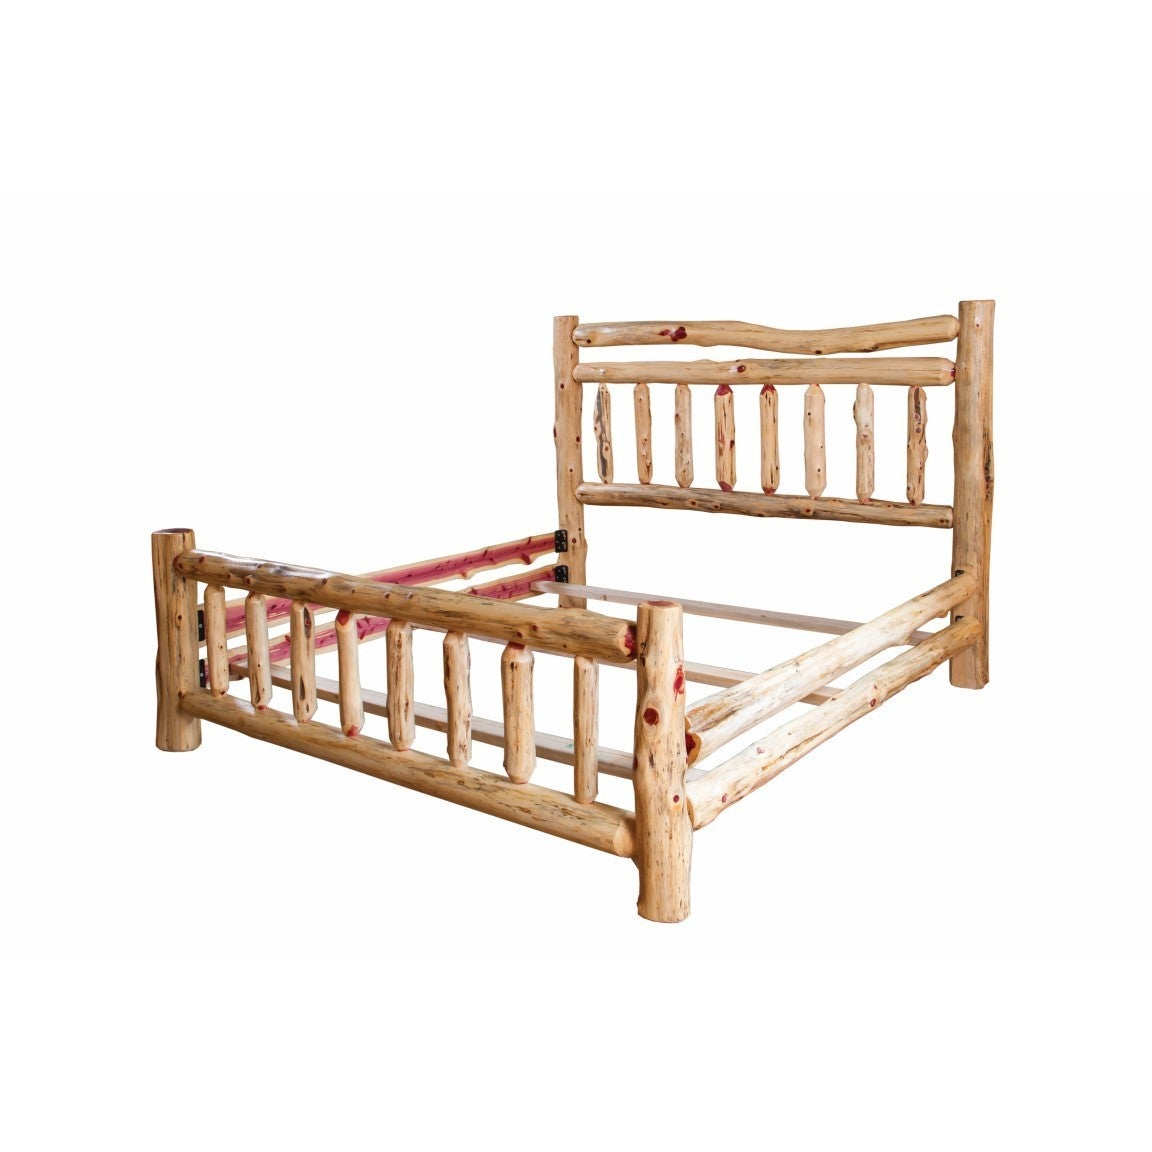 Shop Rustic Red Cedar Log Double Top Rail Bed -Queen Size - On Sale ...